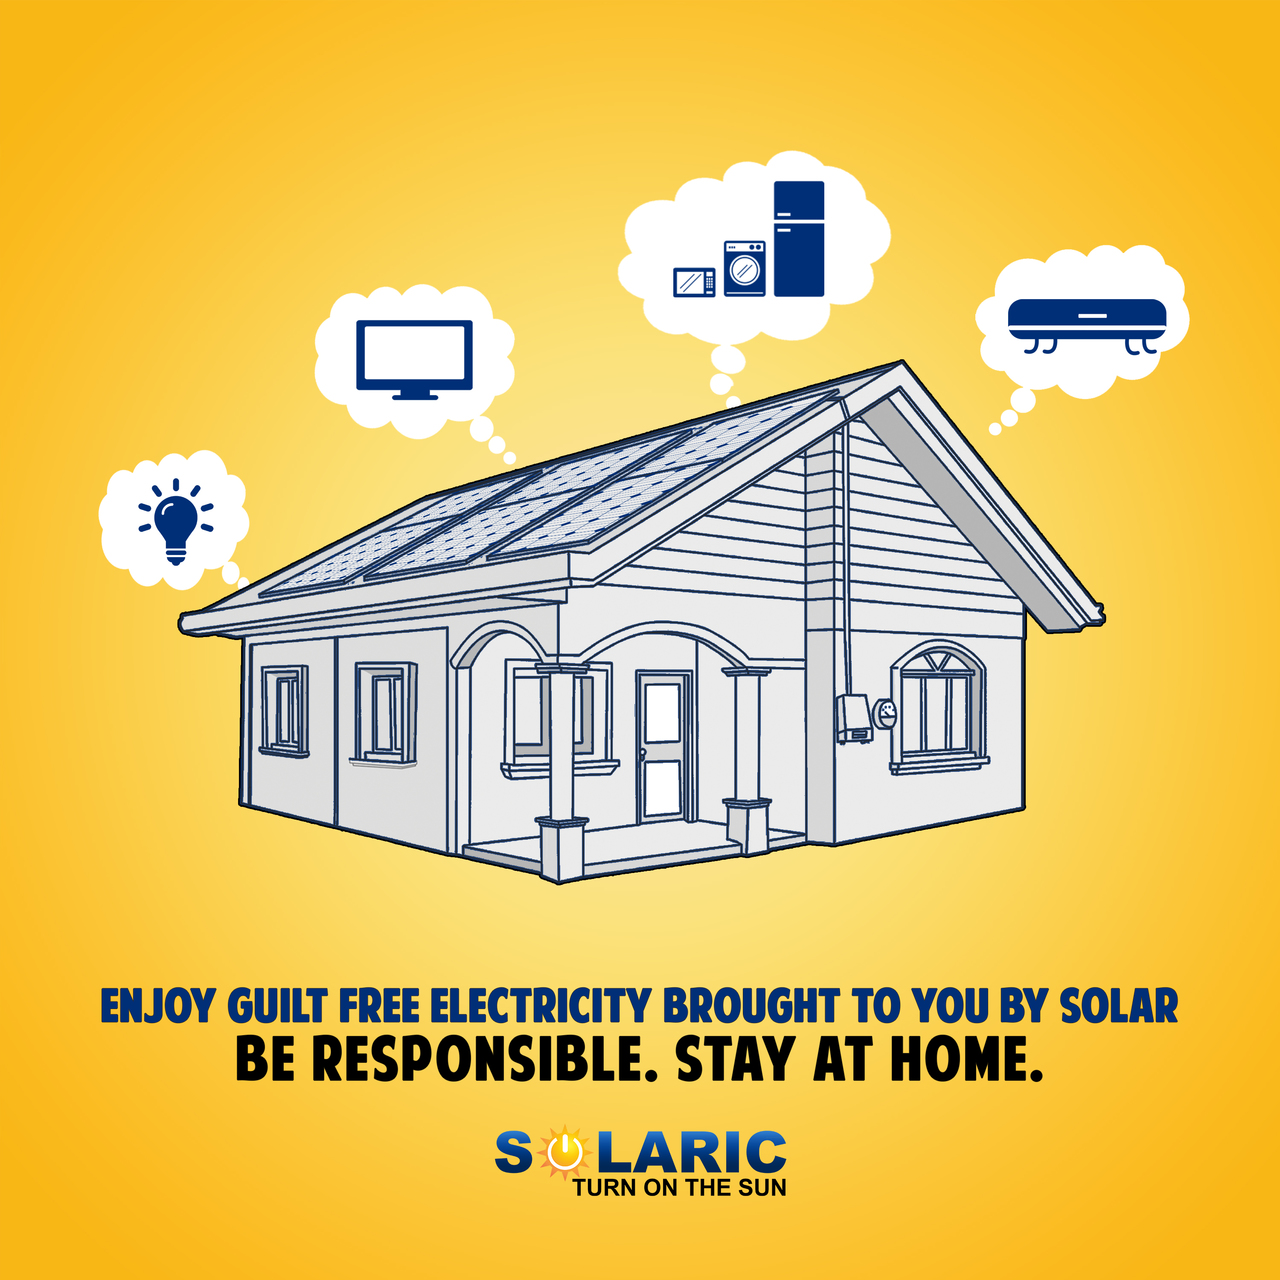 Graphics of a home with solar panels from Solaric